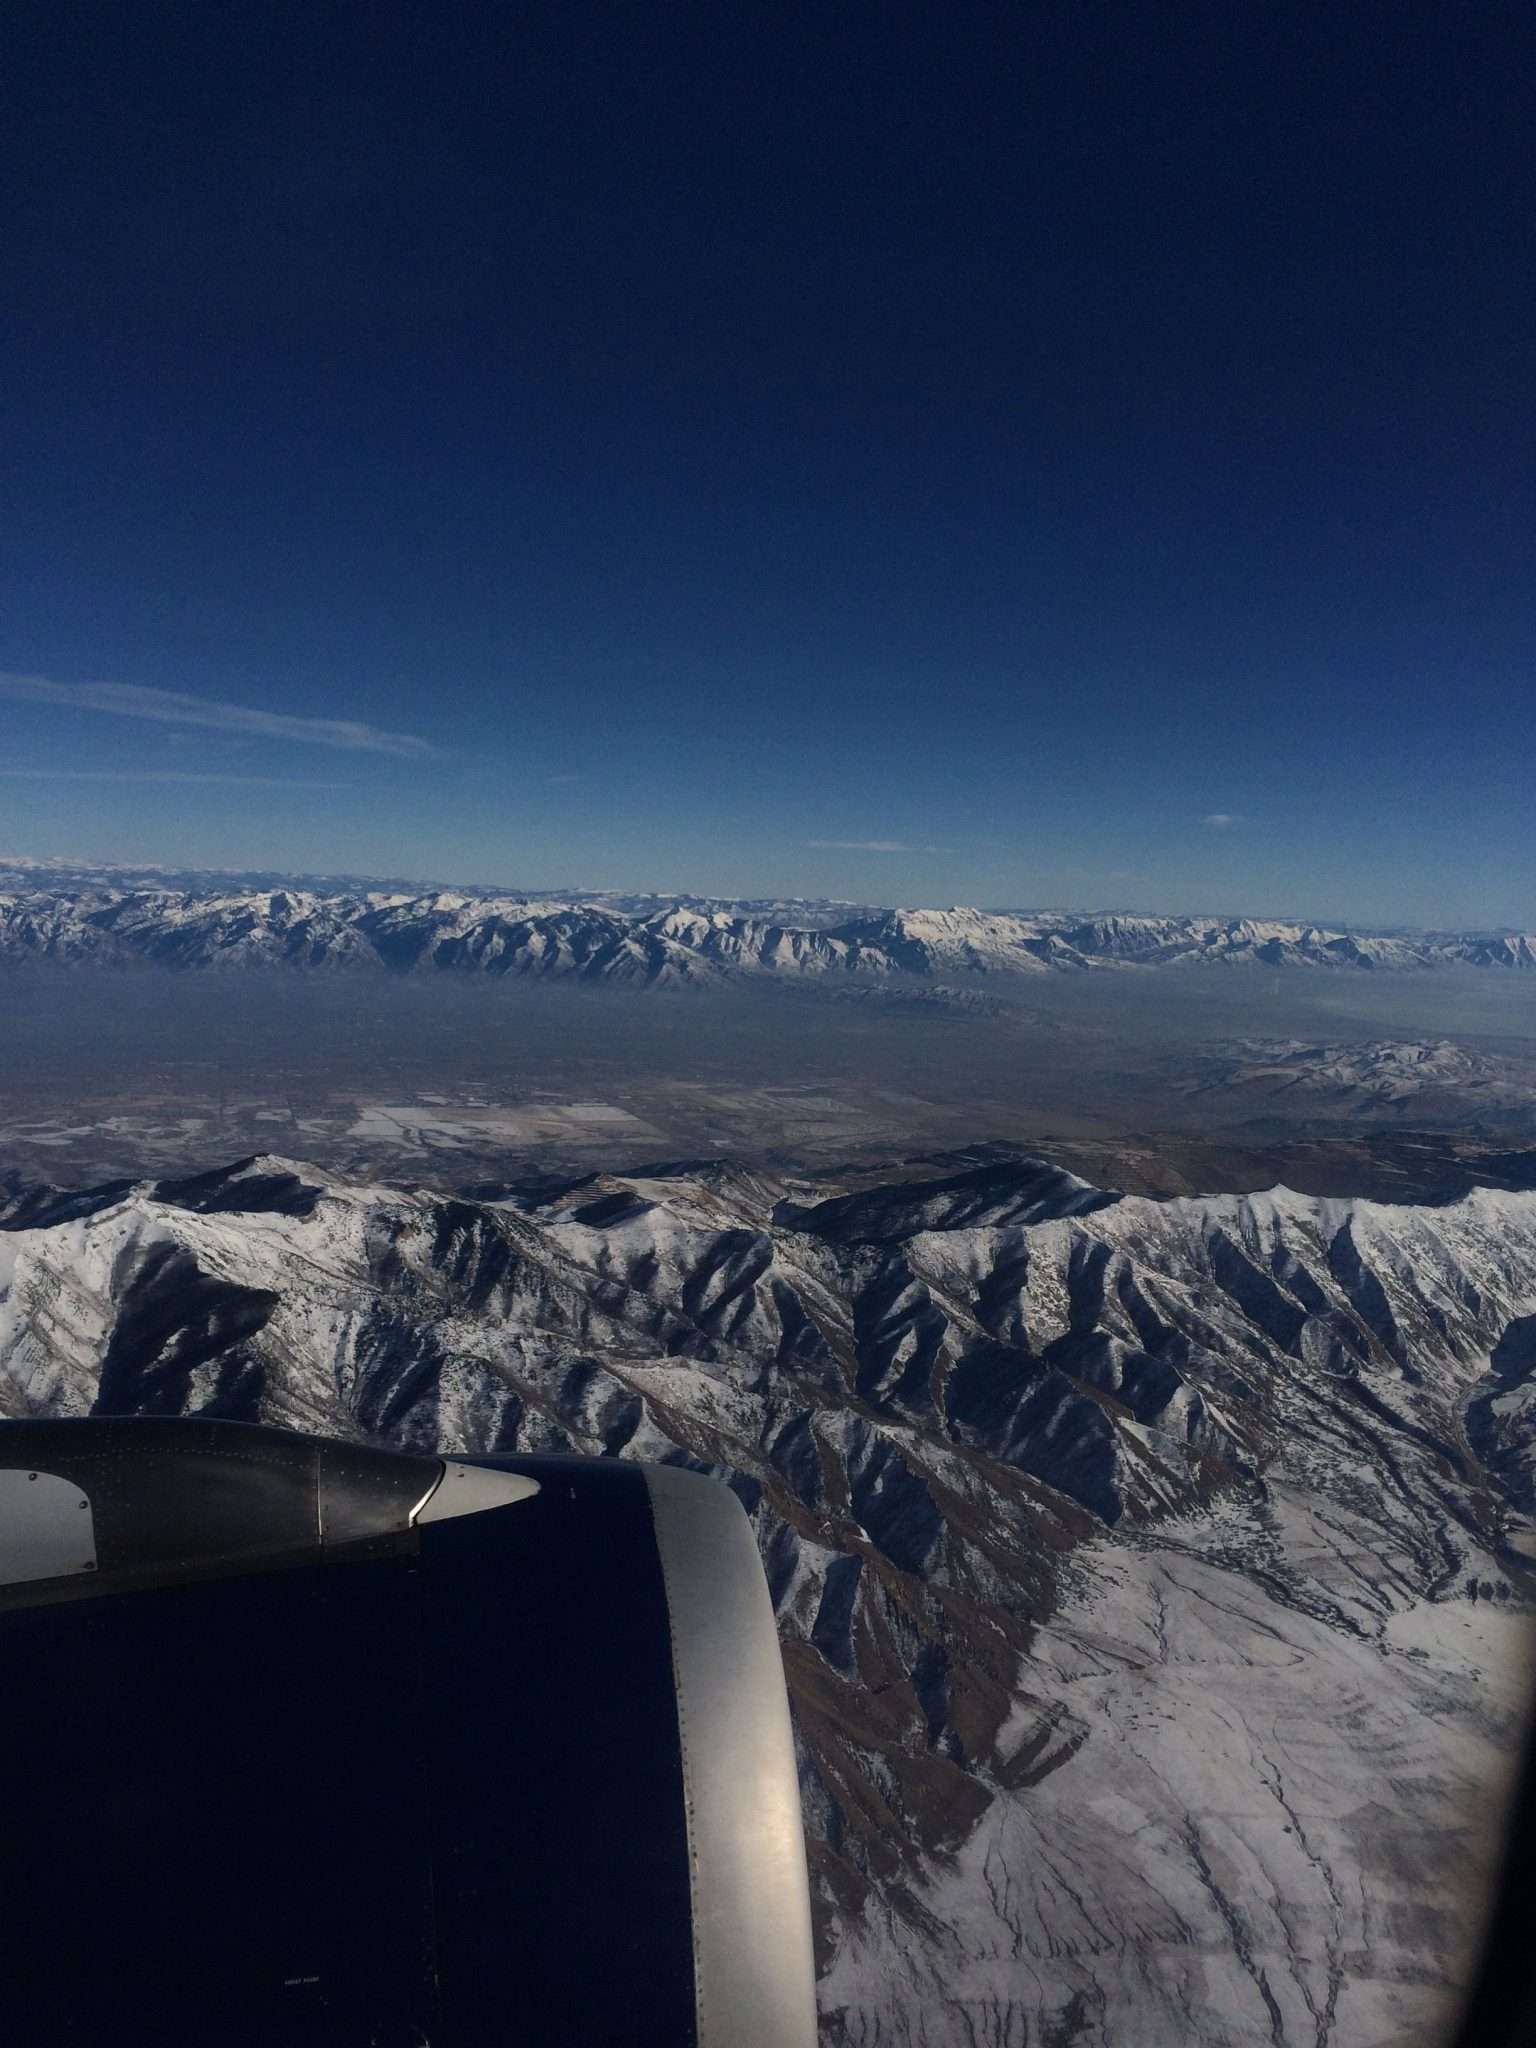 Flying west over the mountains